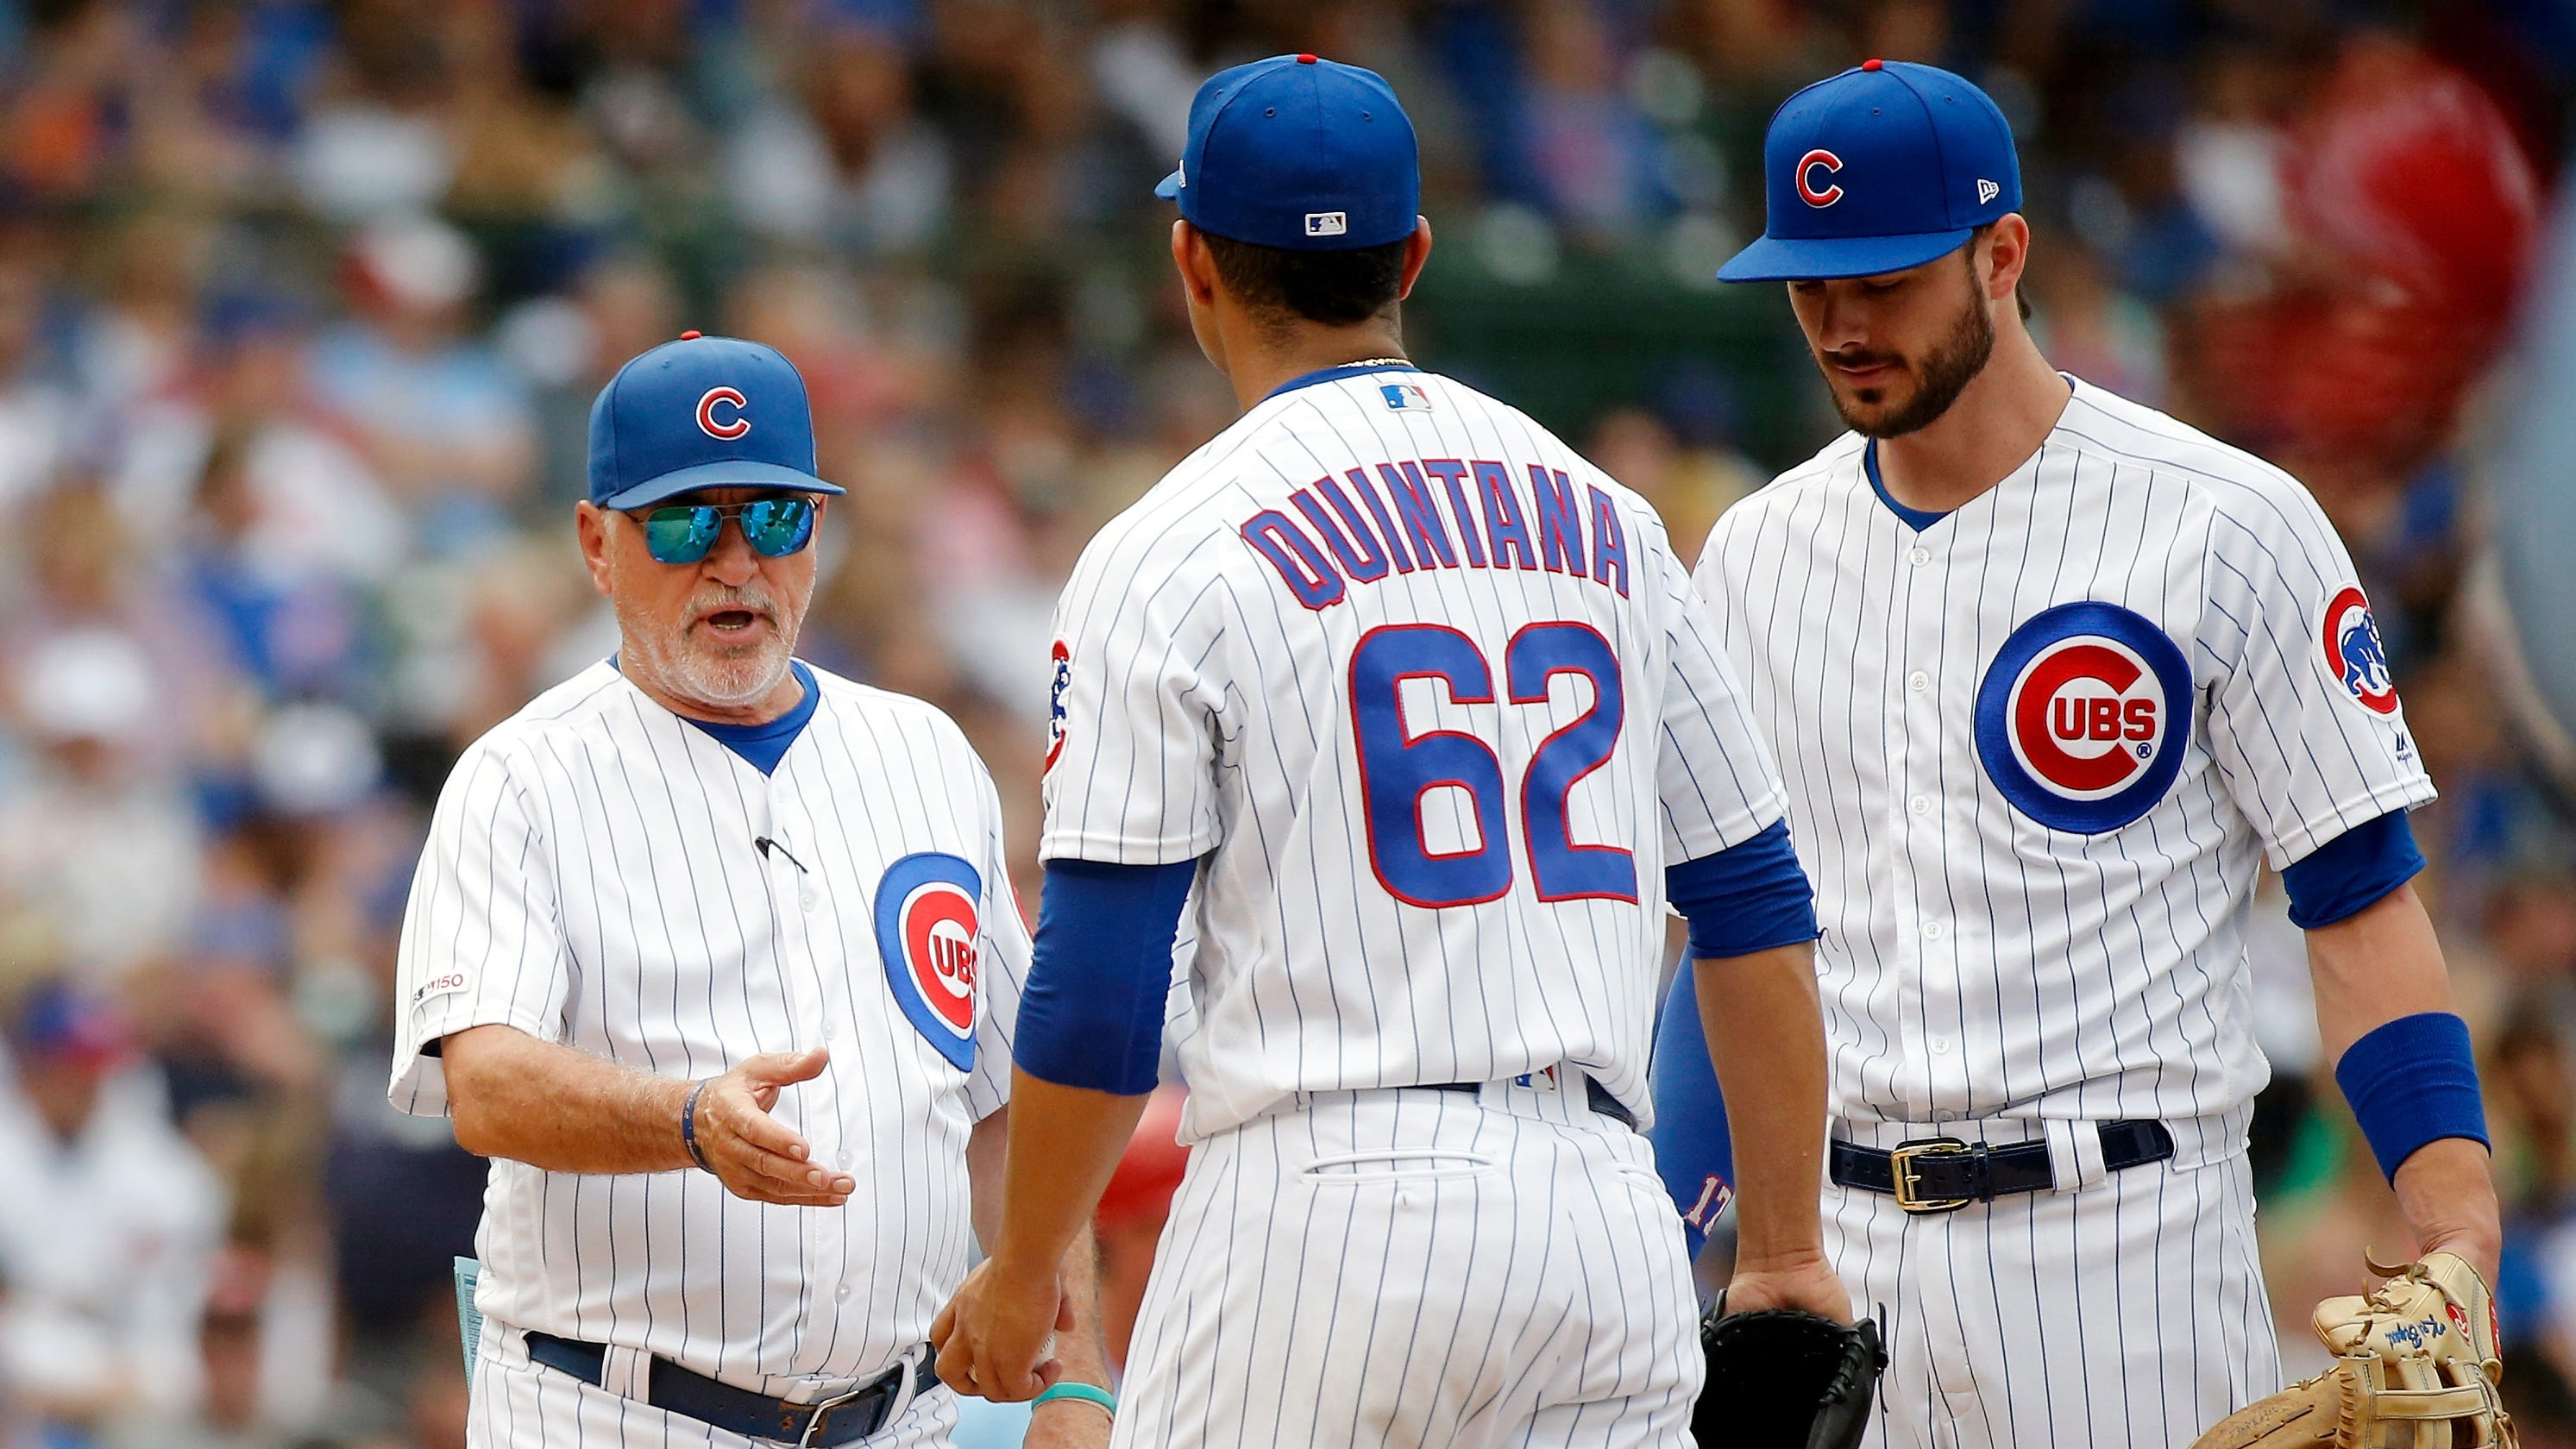 Opinion: Cubs' weekend meltdown officially signals the end of the Joe Maddon era